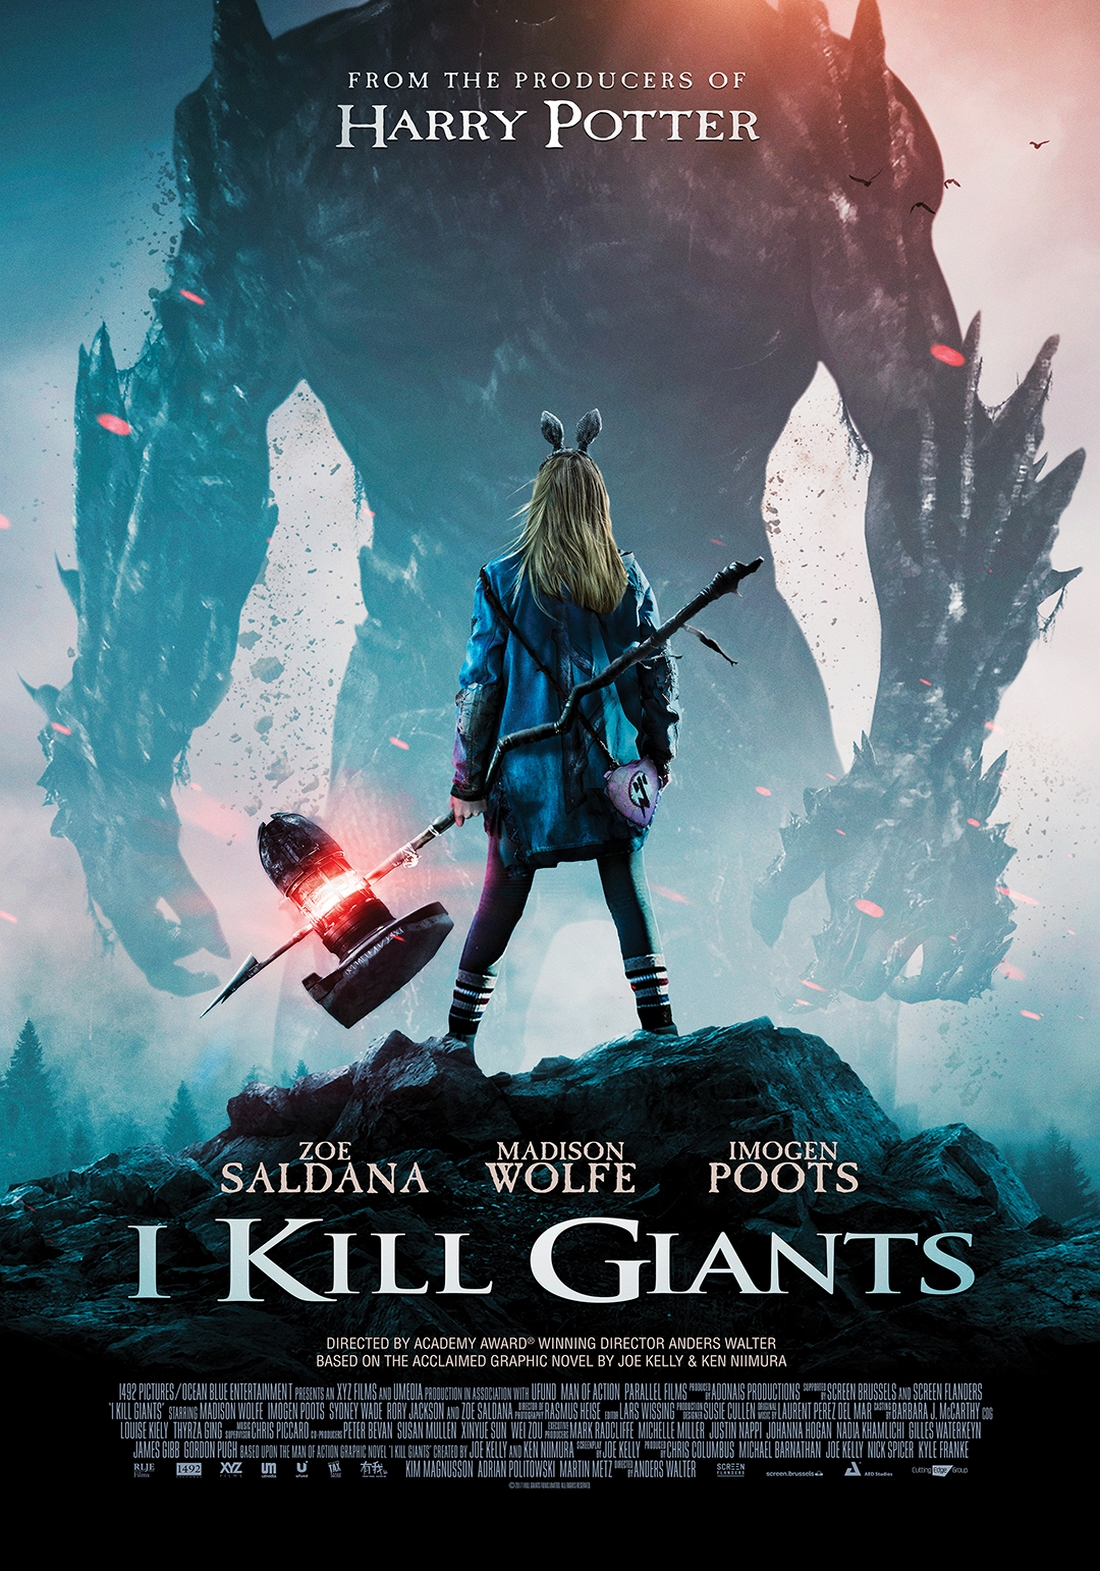 I kill giants - Zabijam gigantów